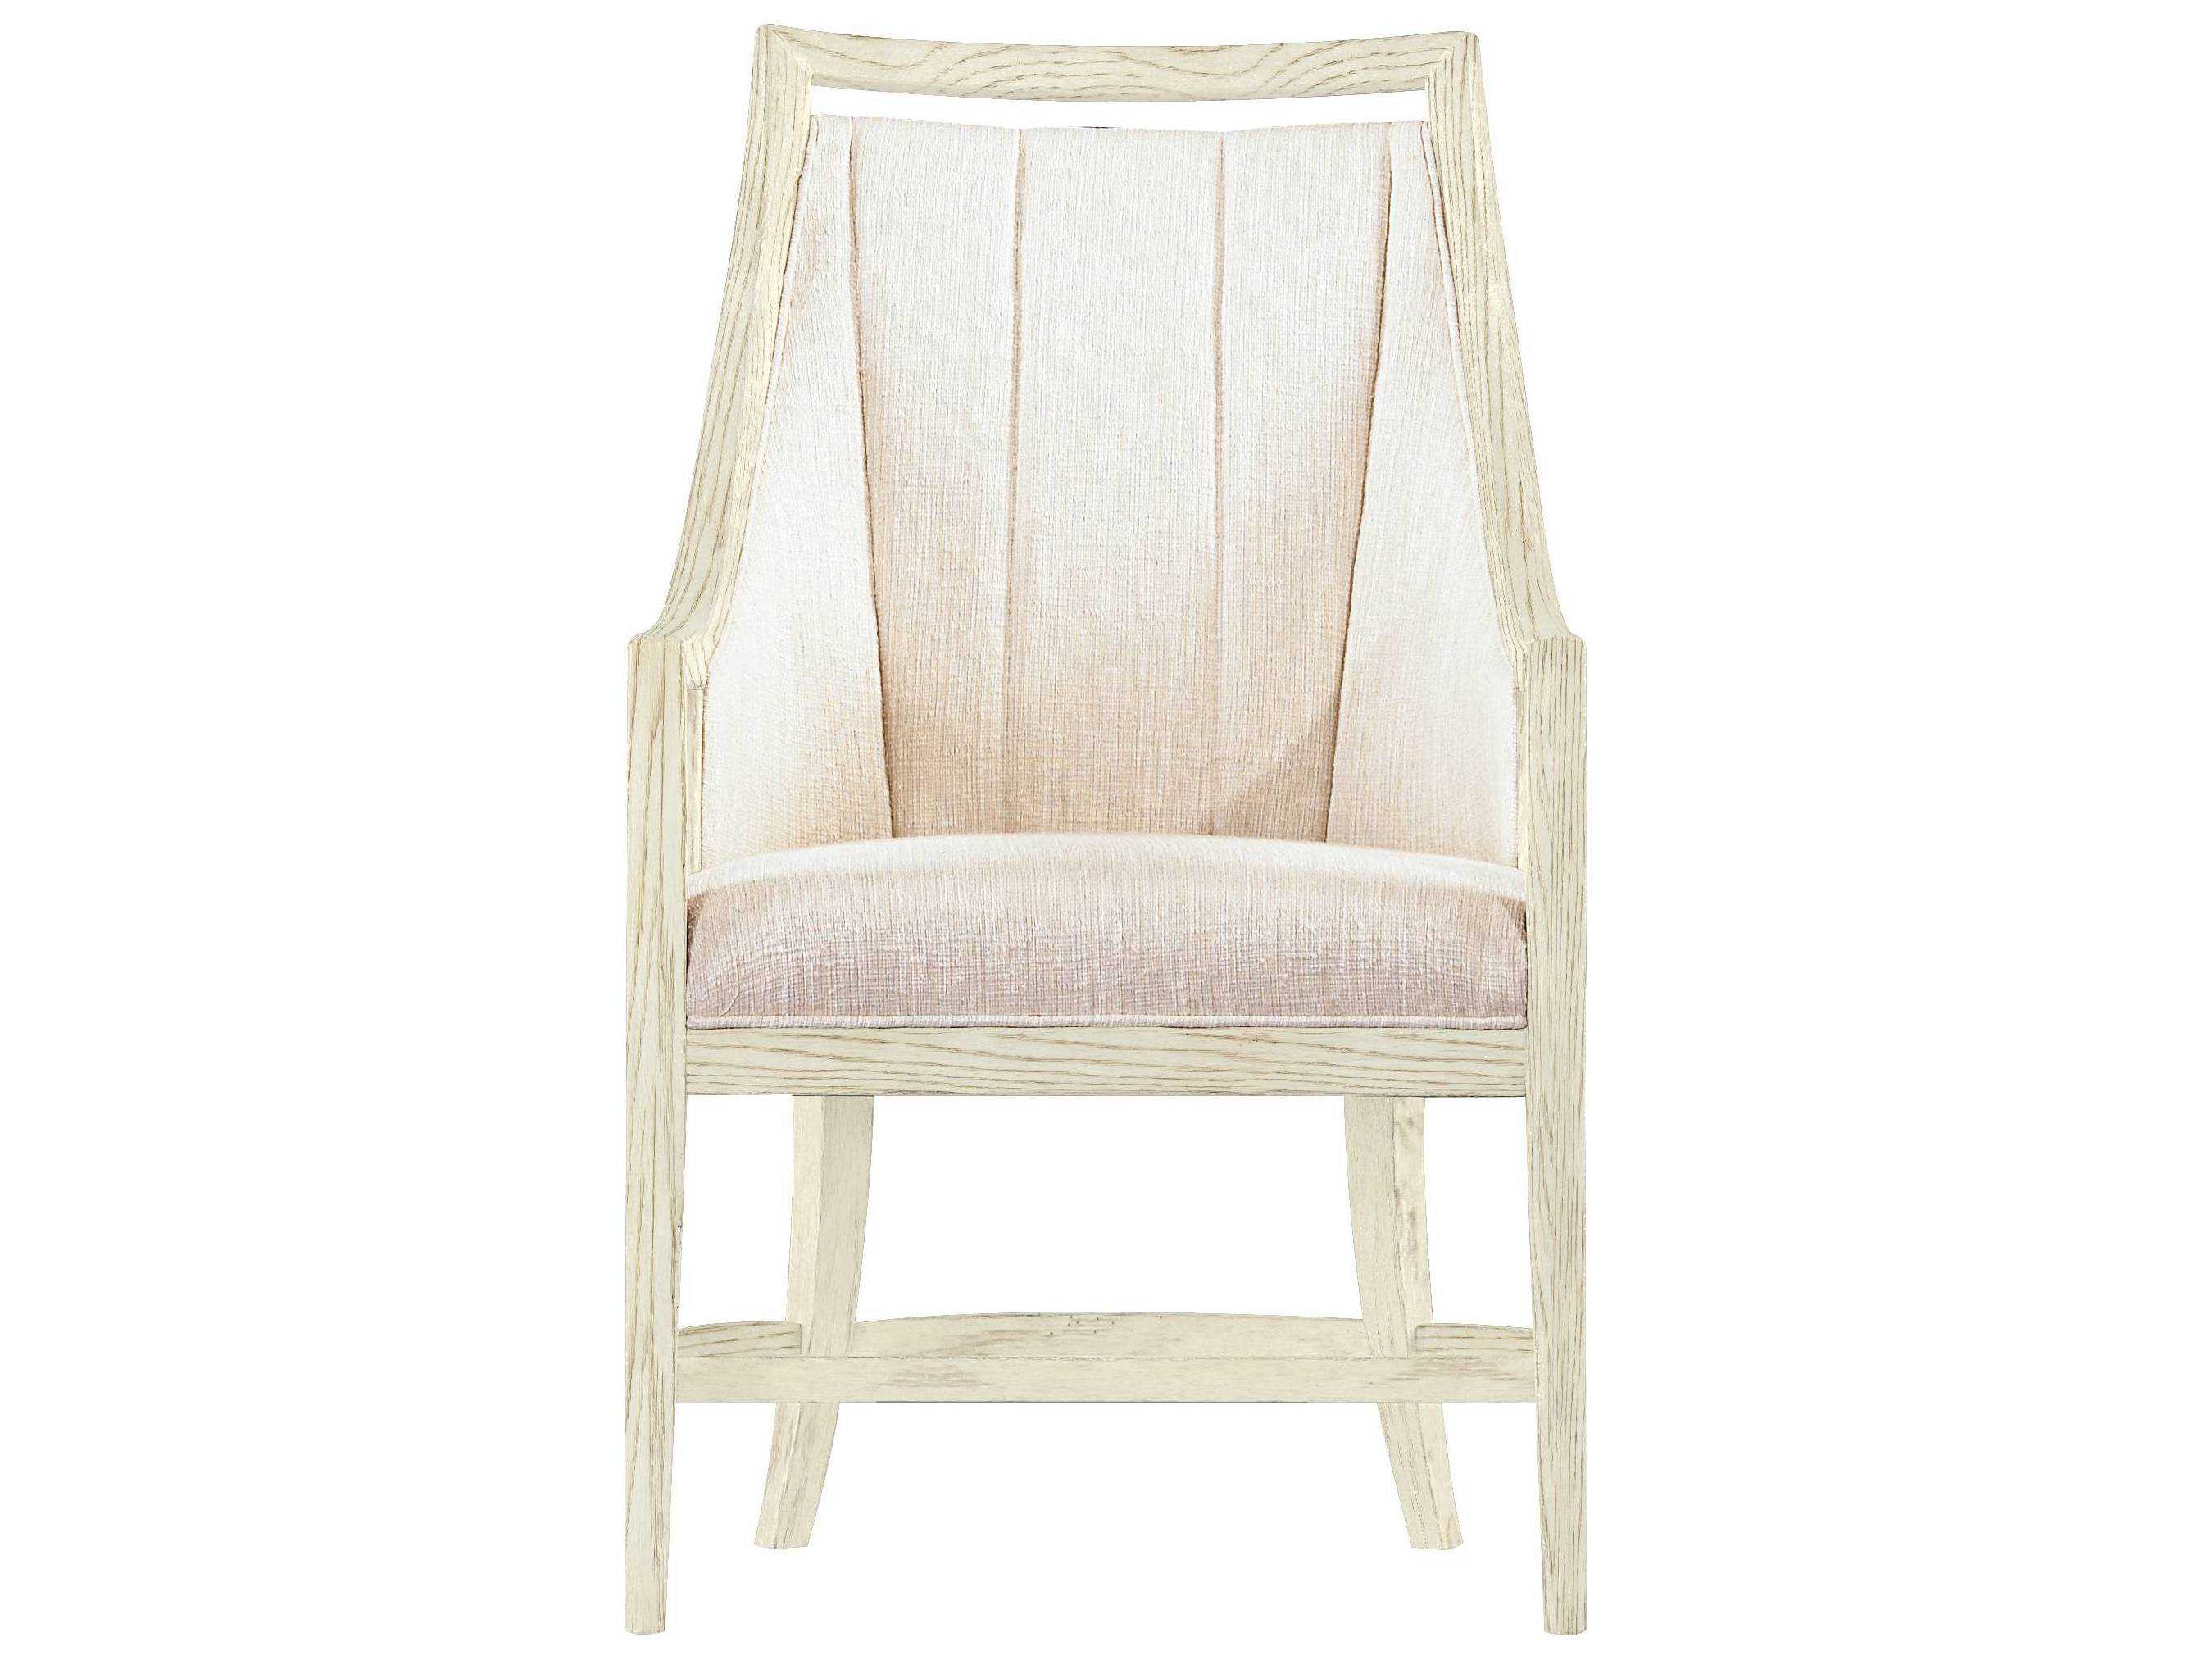 sail cloth beach chairs fuzzy office chair stanley furniture coastal living resort by the